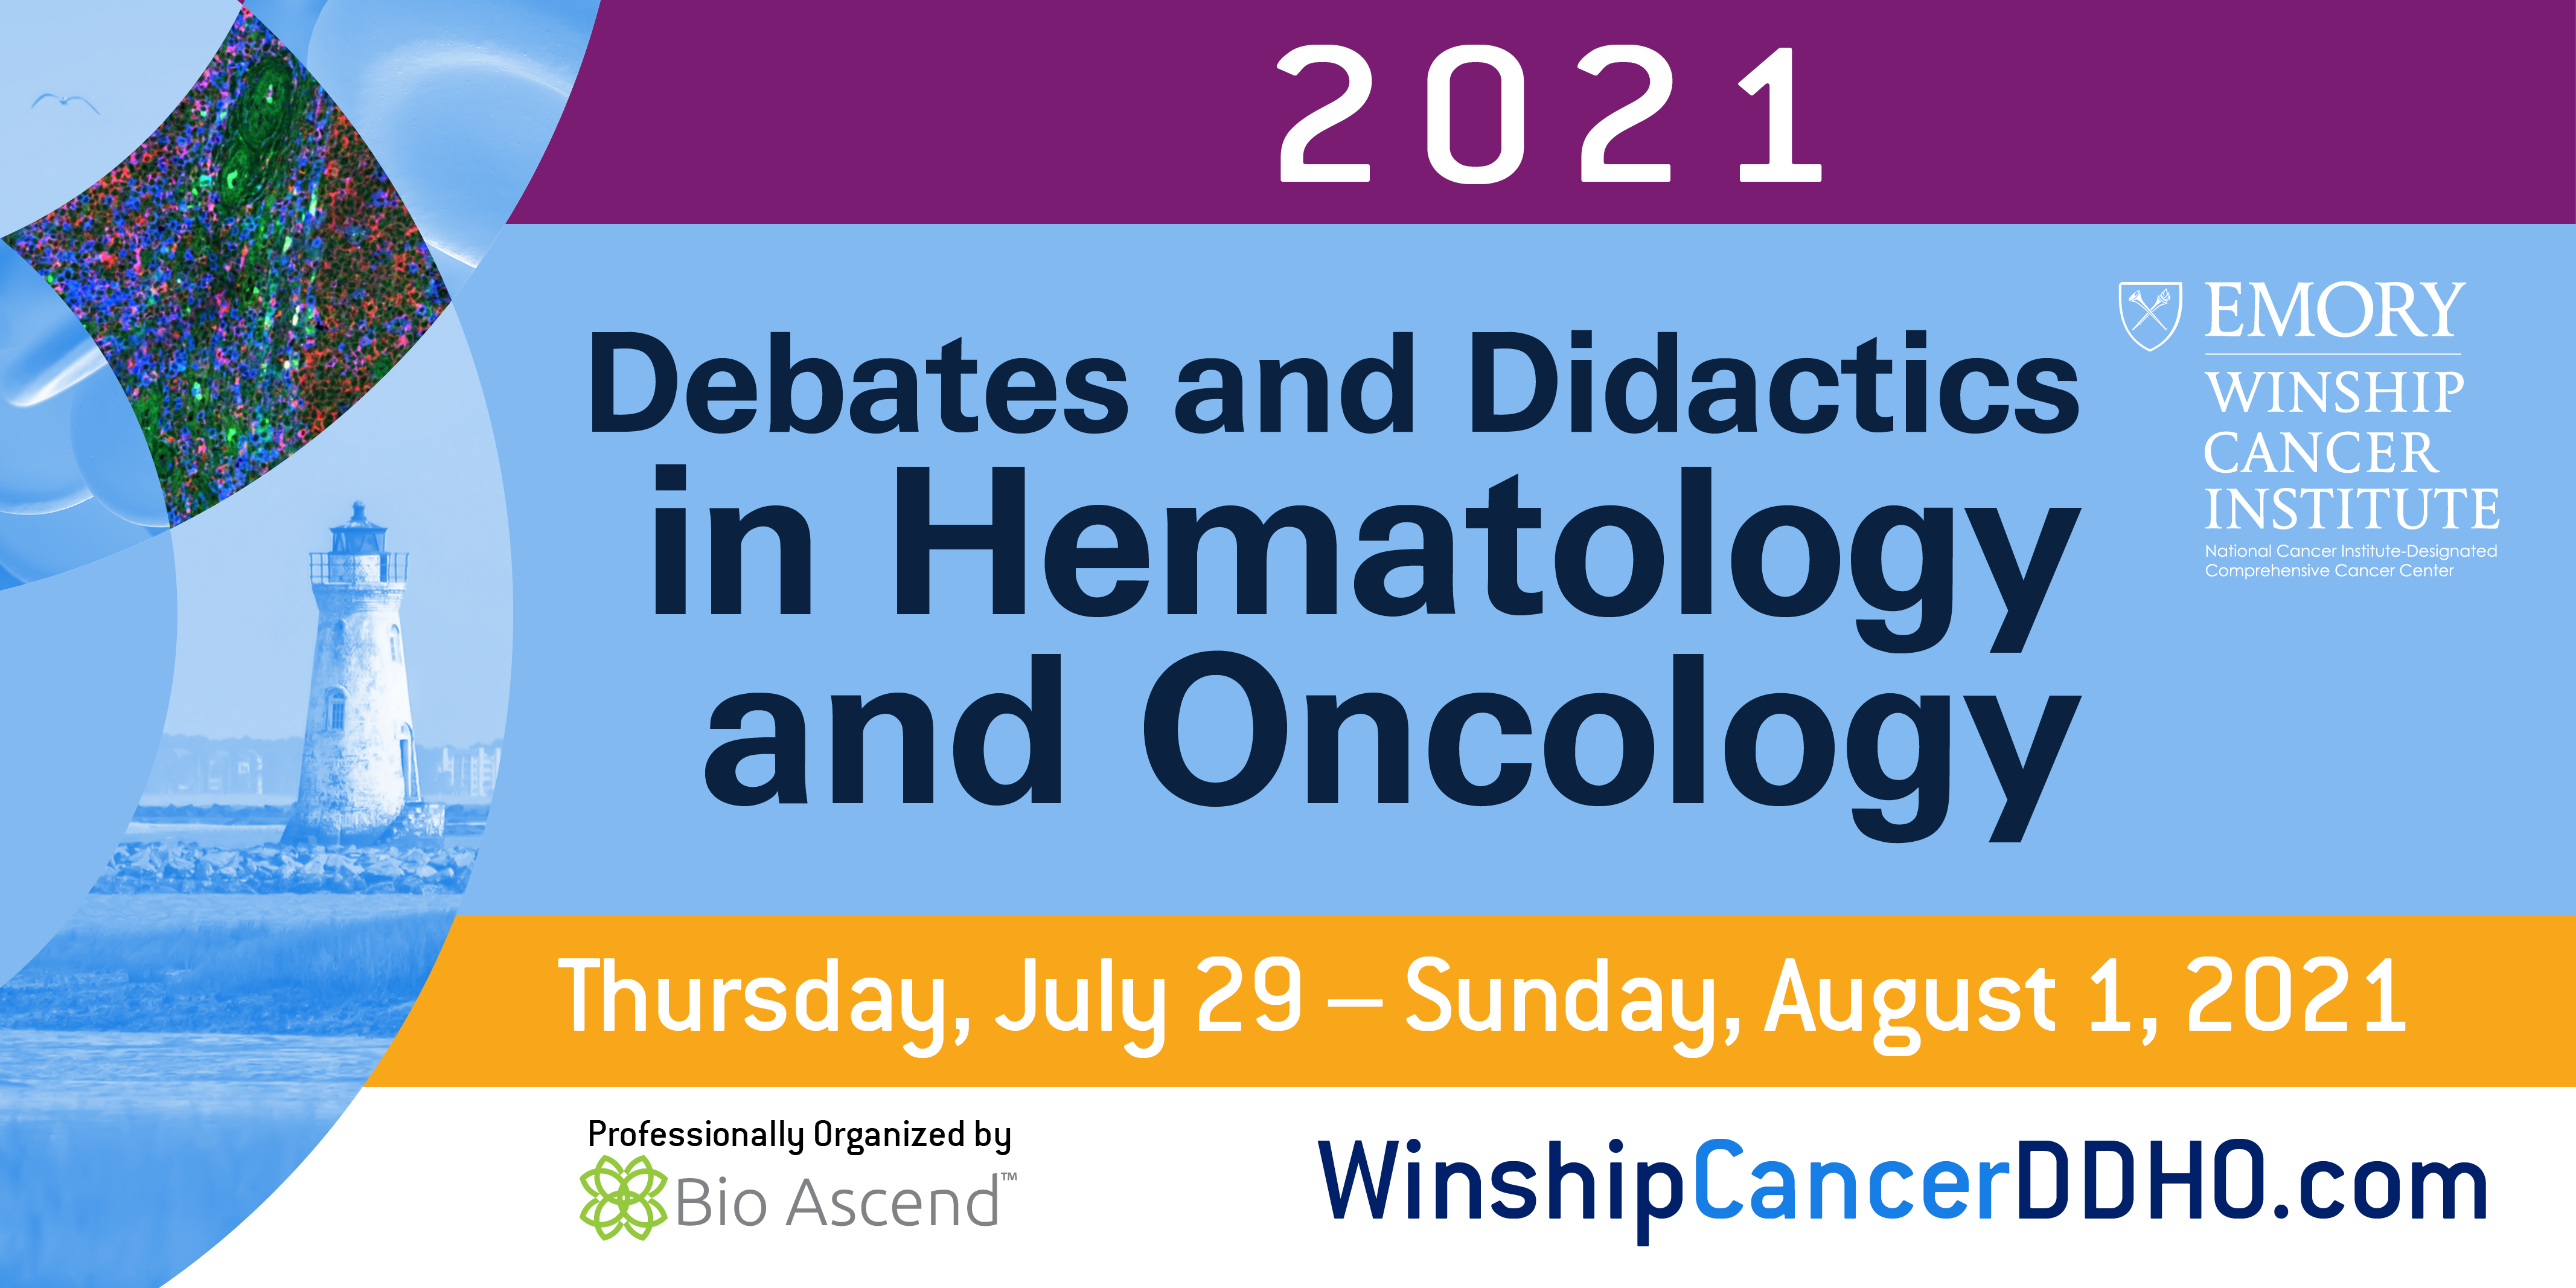 Debates & Didactics in Hematology and Oncology 2021